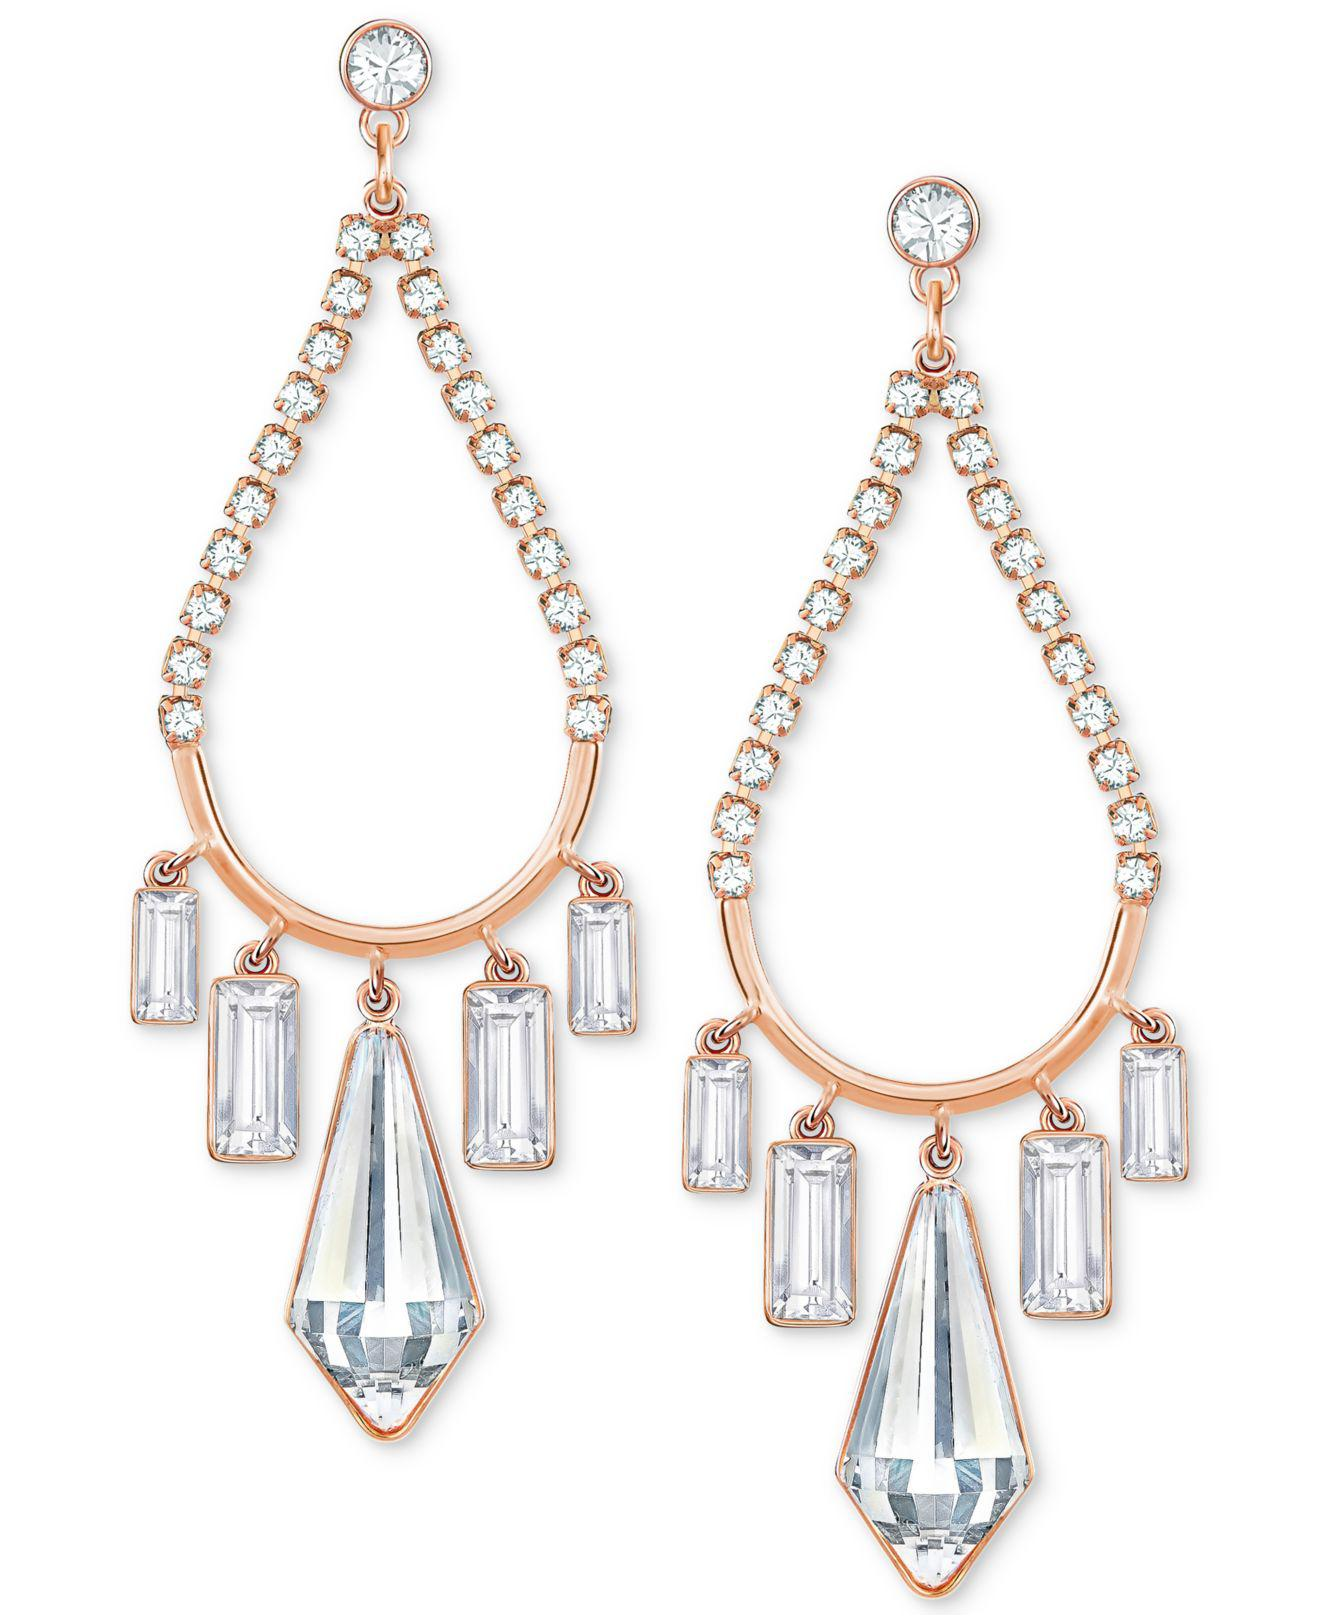 Lyst Swarovski Rose Gold tone Crystal Chandelier Earrings in